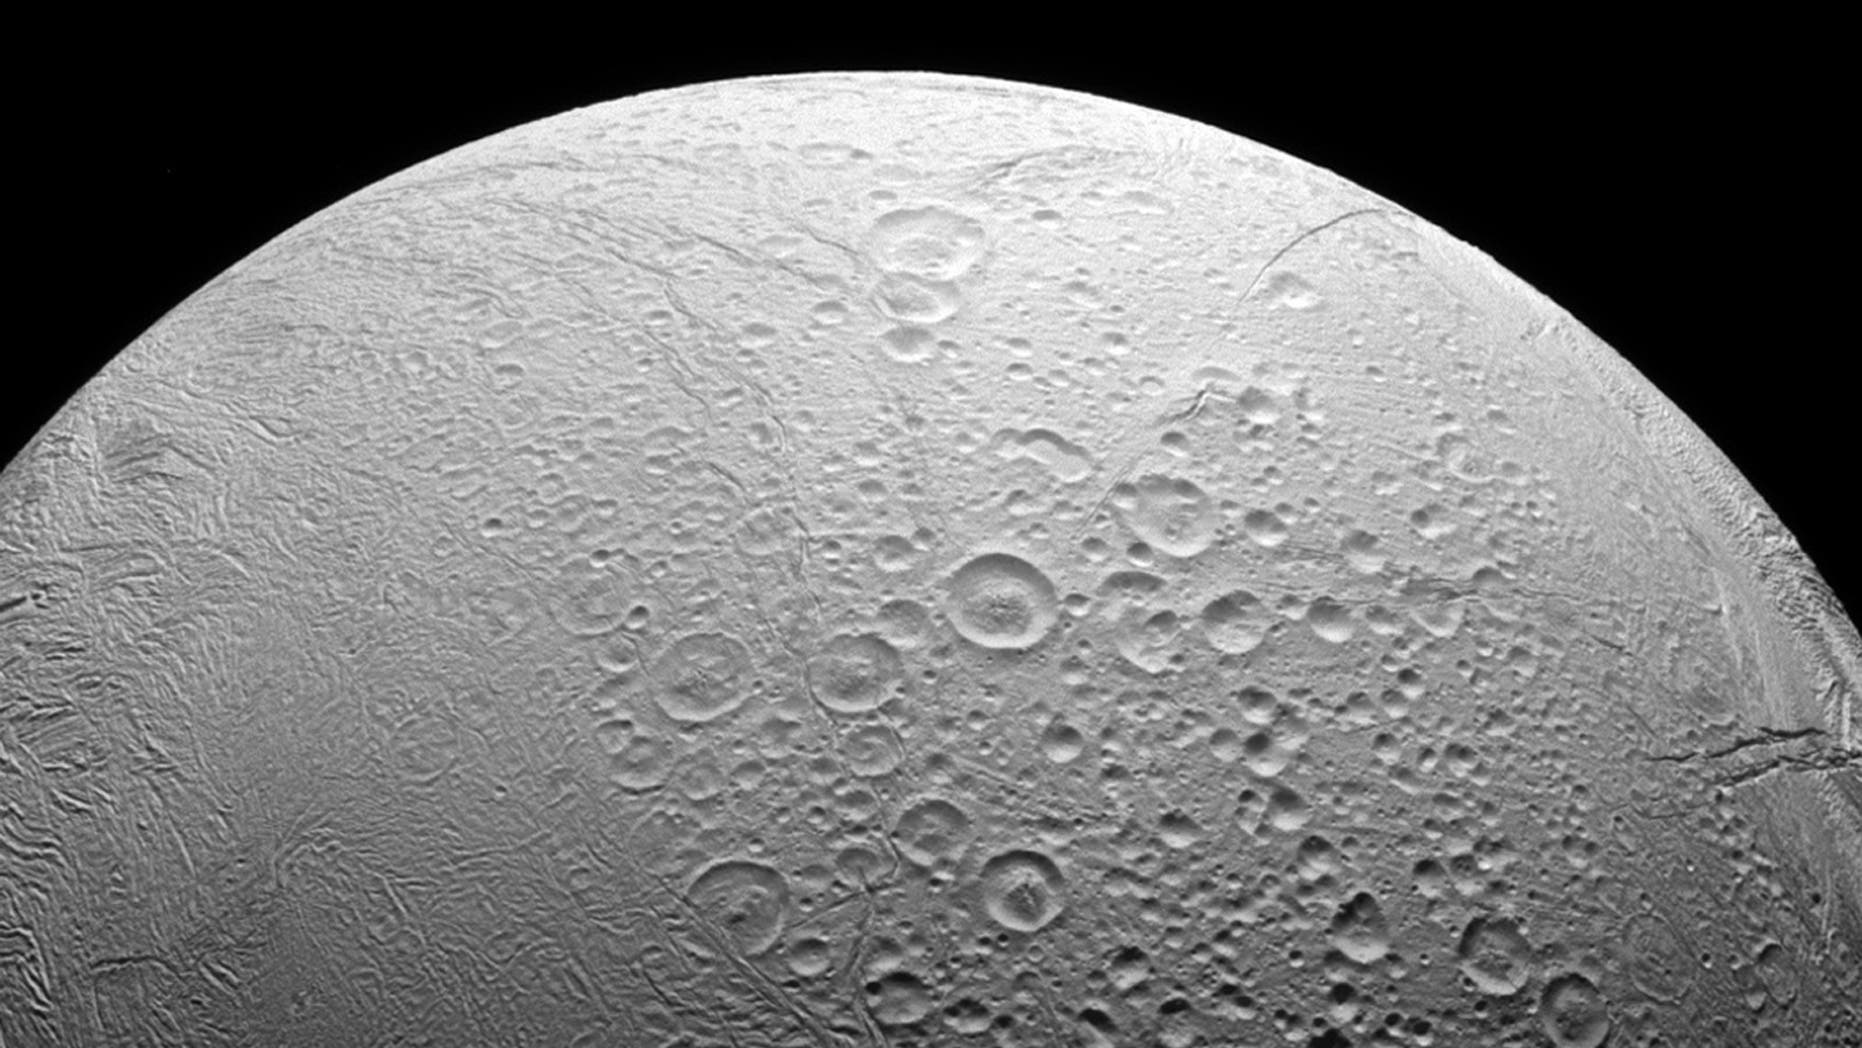 File photo: Saturn's ocean-bearing moon Enceladus taken in visible light with the Cassini spacecraft narrow-angle camera on Nov. 27, 2016. NASA/JPL-Caltech/Space Science Institute/Handout via REUTERS